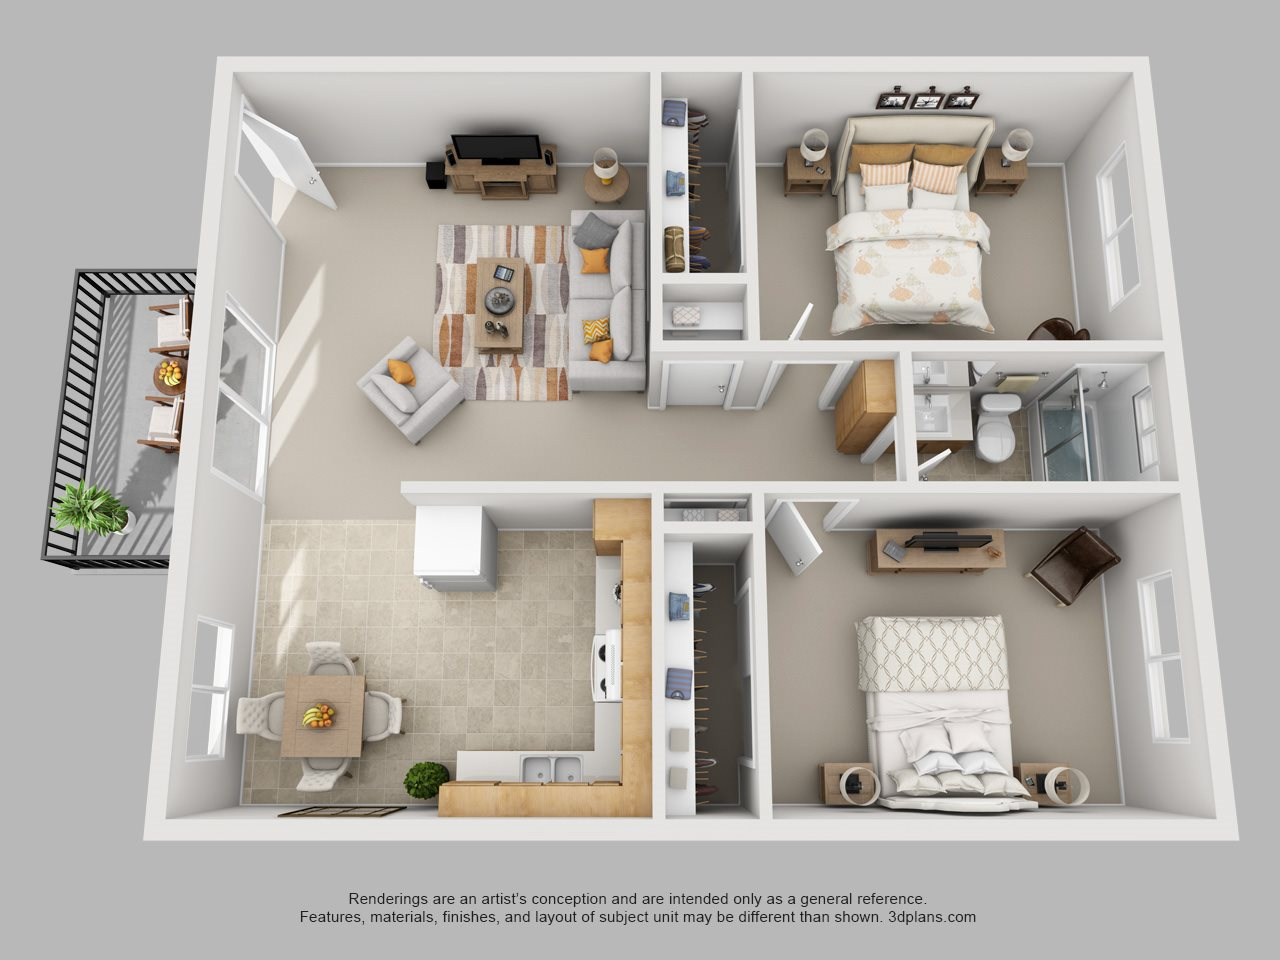 2 bed, 1 bath Floor Plan 3